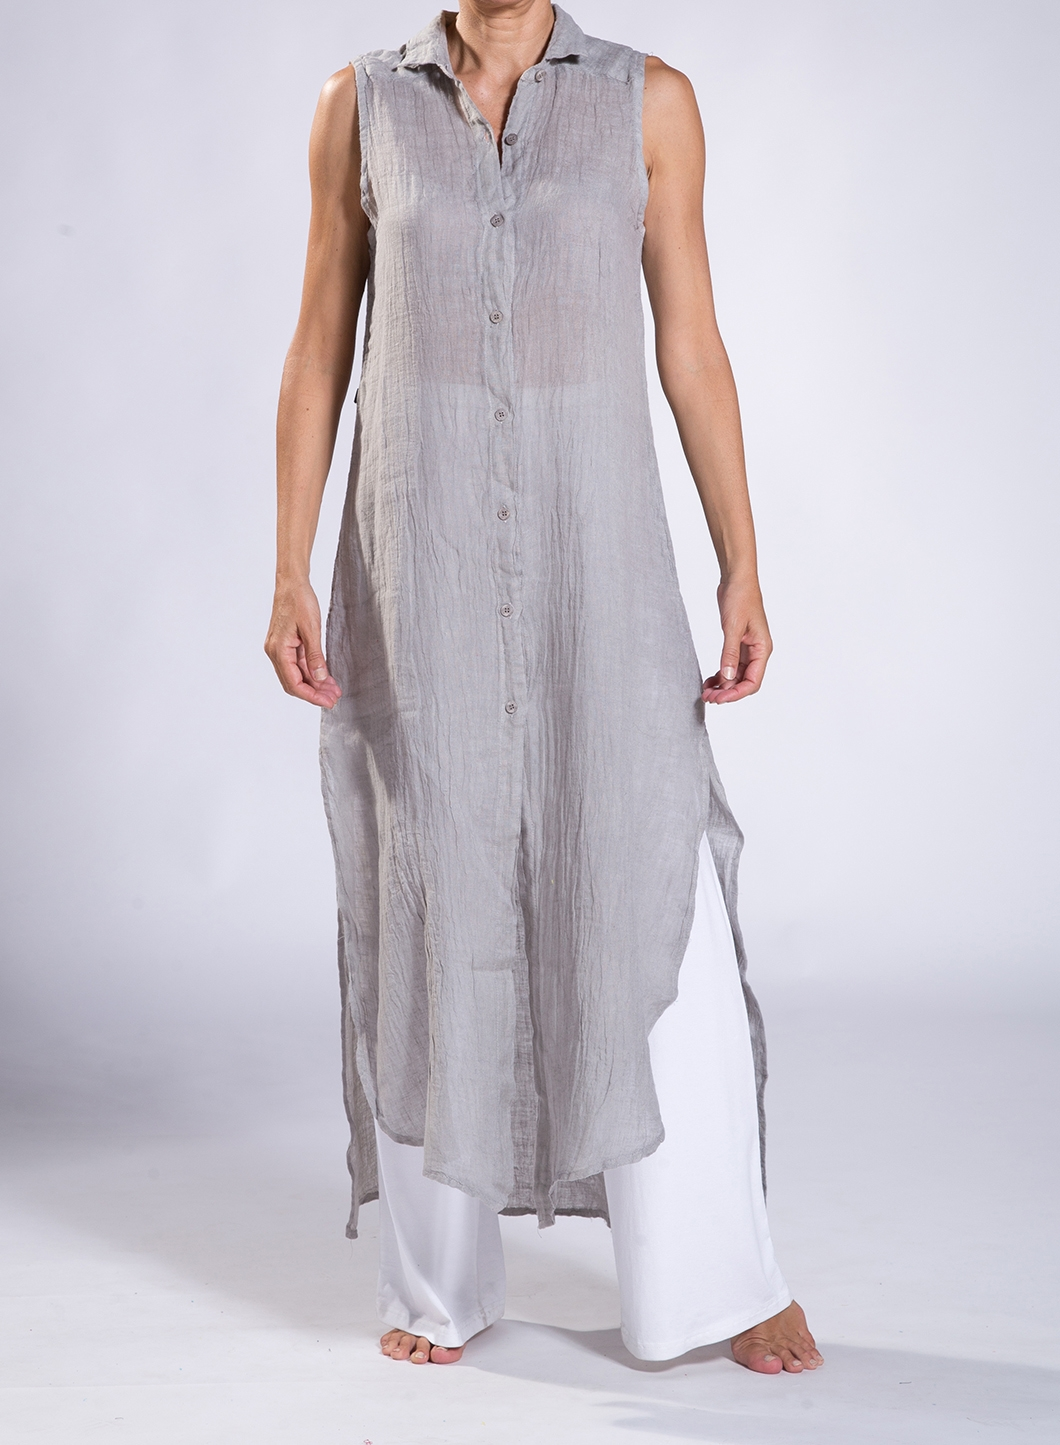 Dress Semizie Summer Sleeveless 100 Linen Gauze Join